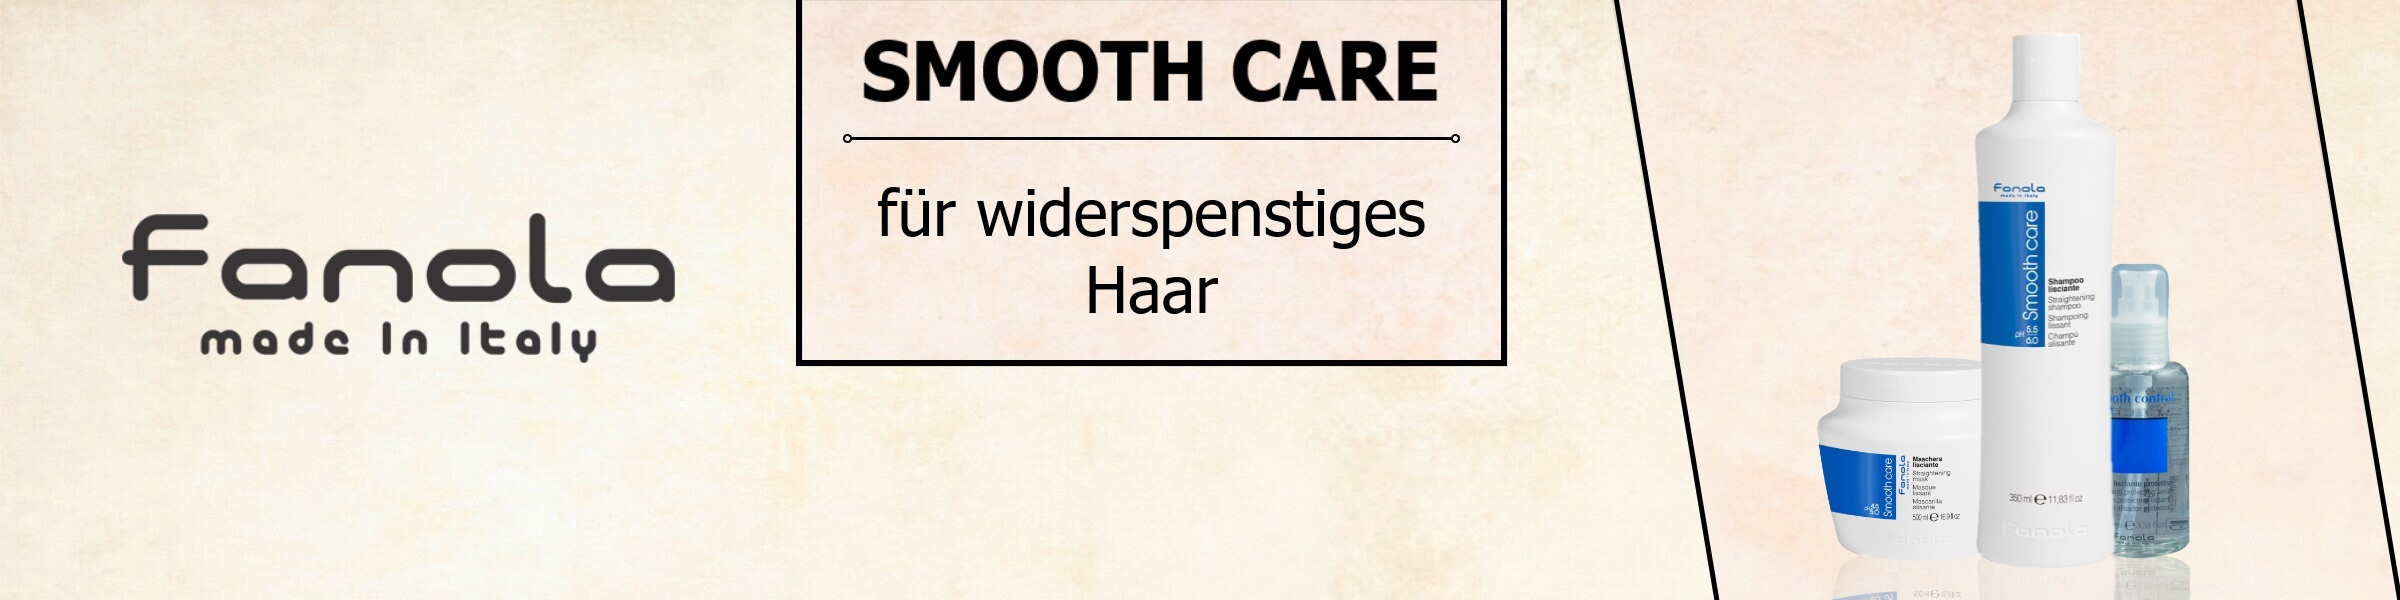 Smooth Care